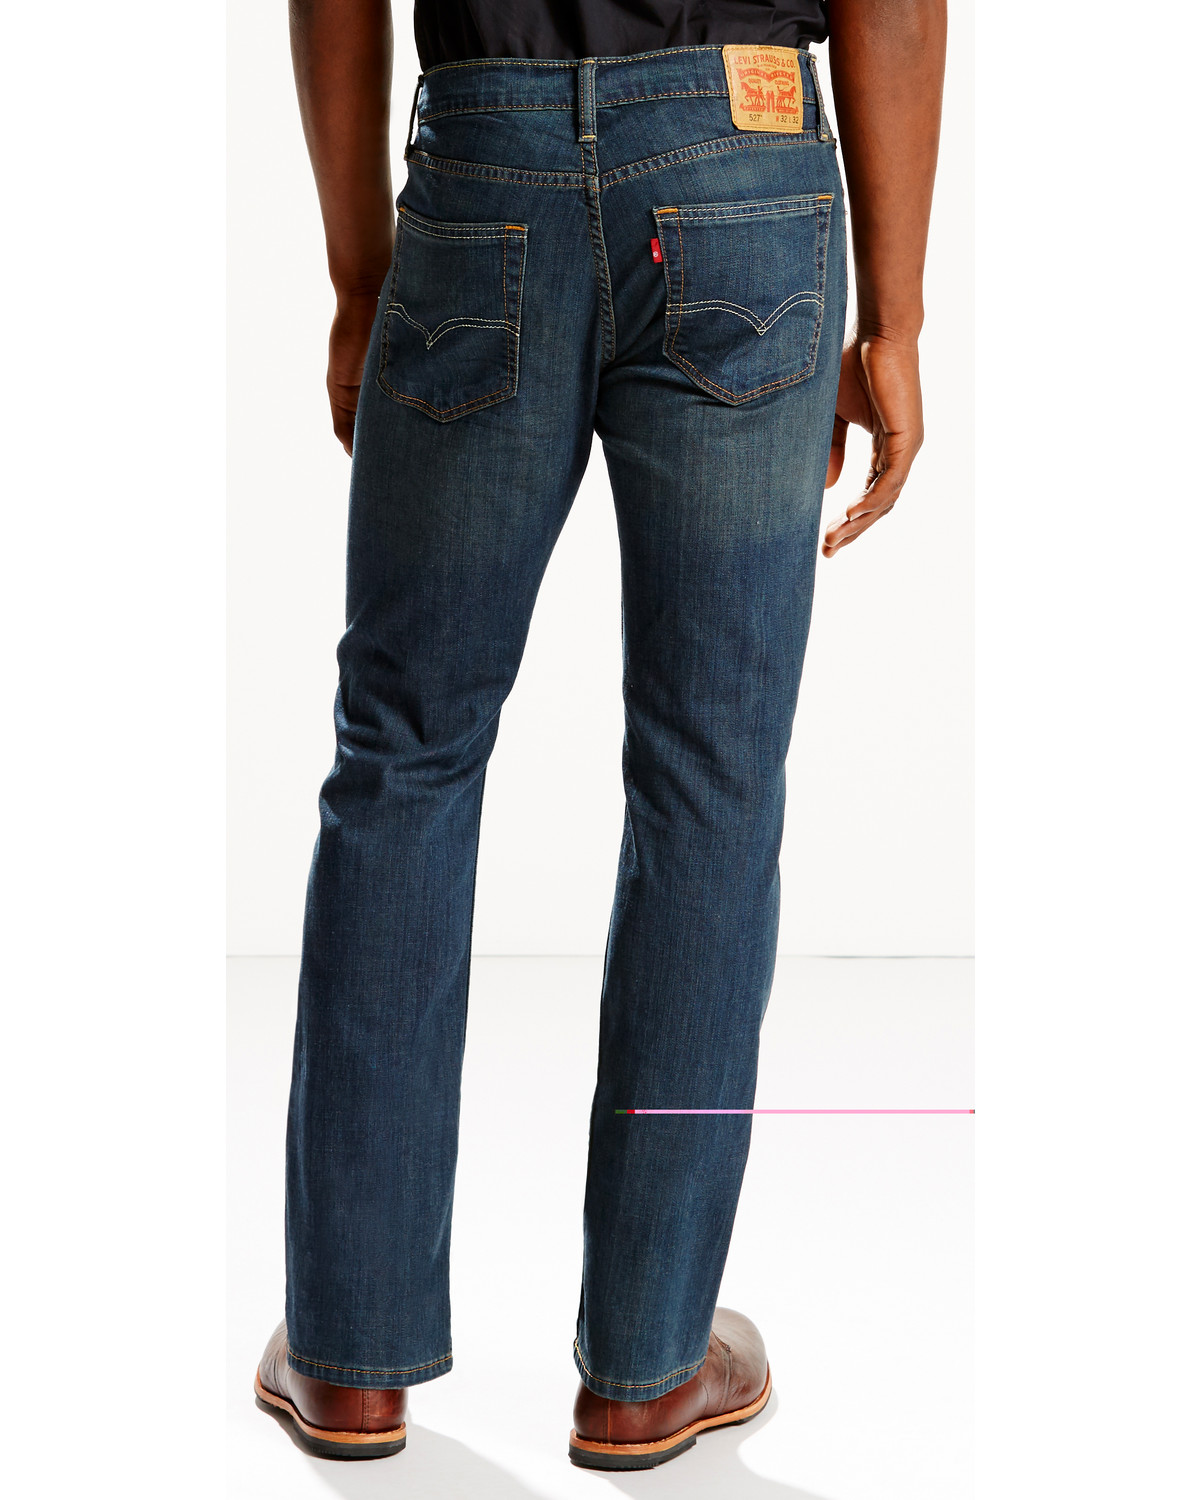 f18390a19bf Levi's Men's 527 Low Rise Zip Fly Stretch Jeans - Boot Cut